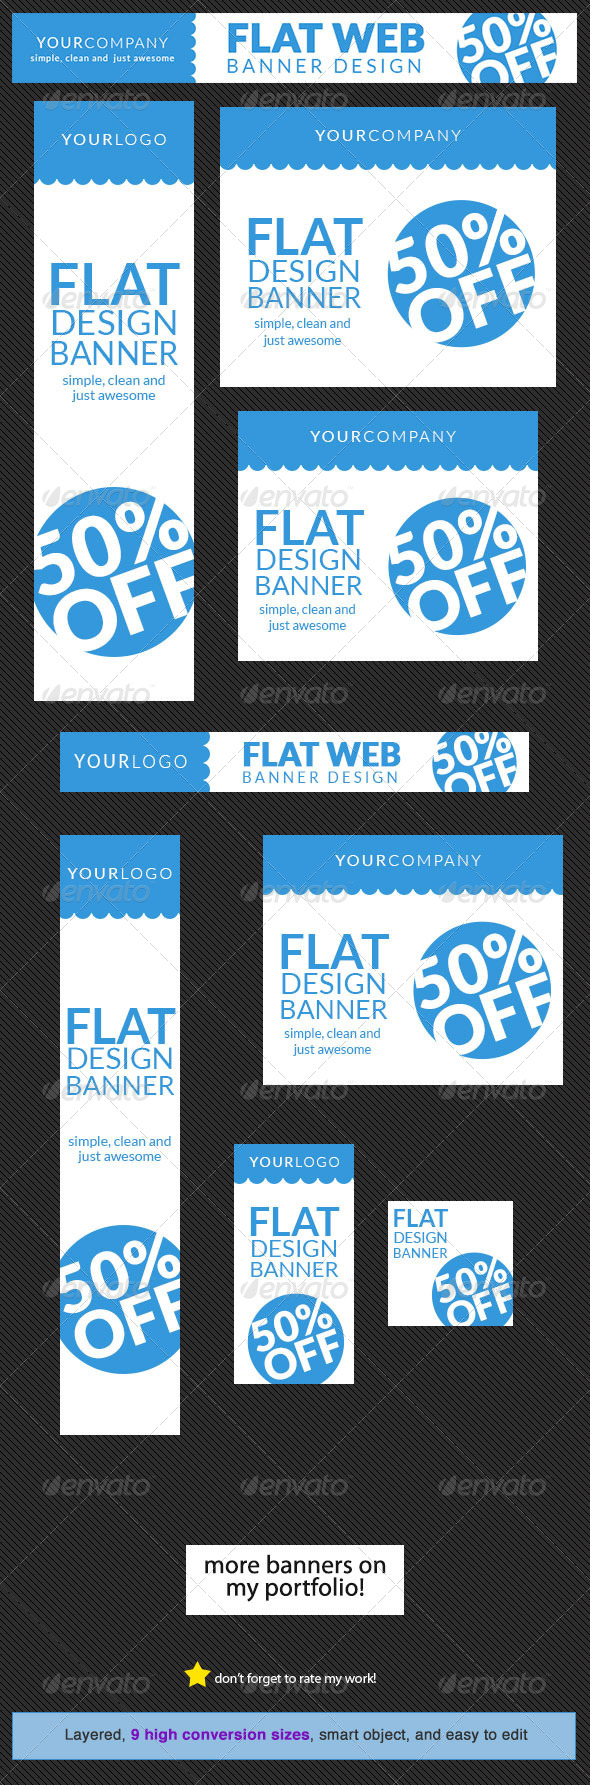 GraphicRiver Flat Web Banner Design Template 5622538